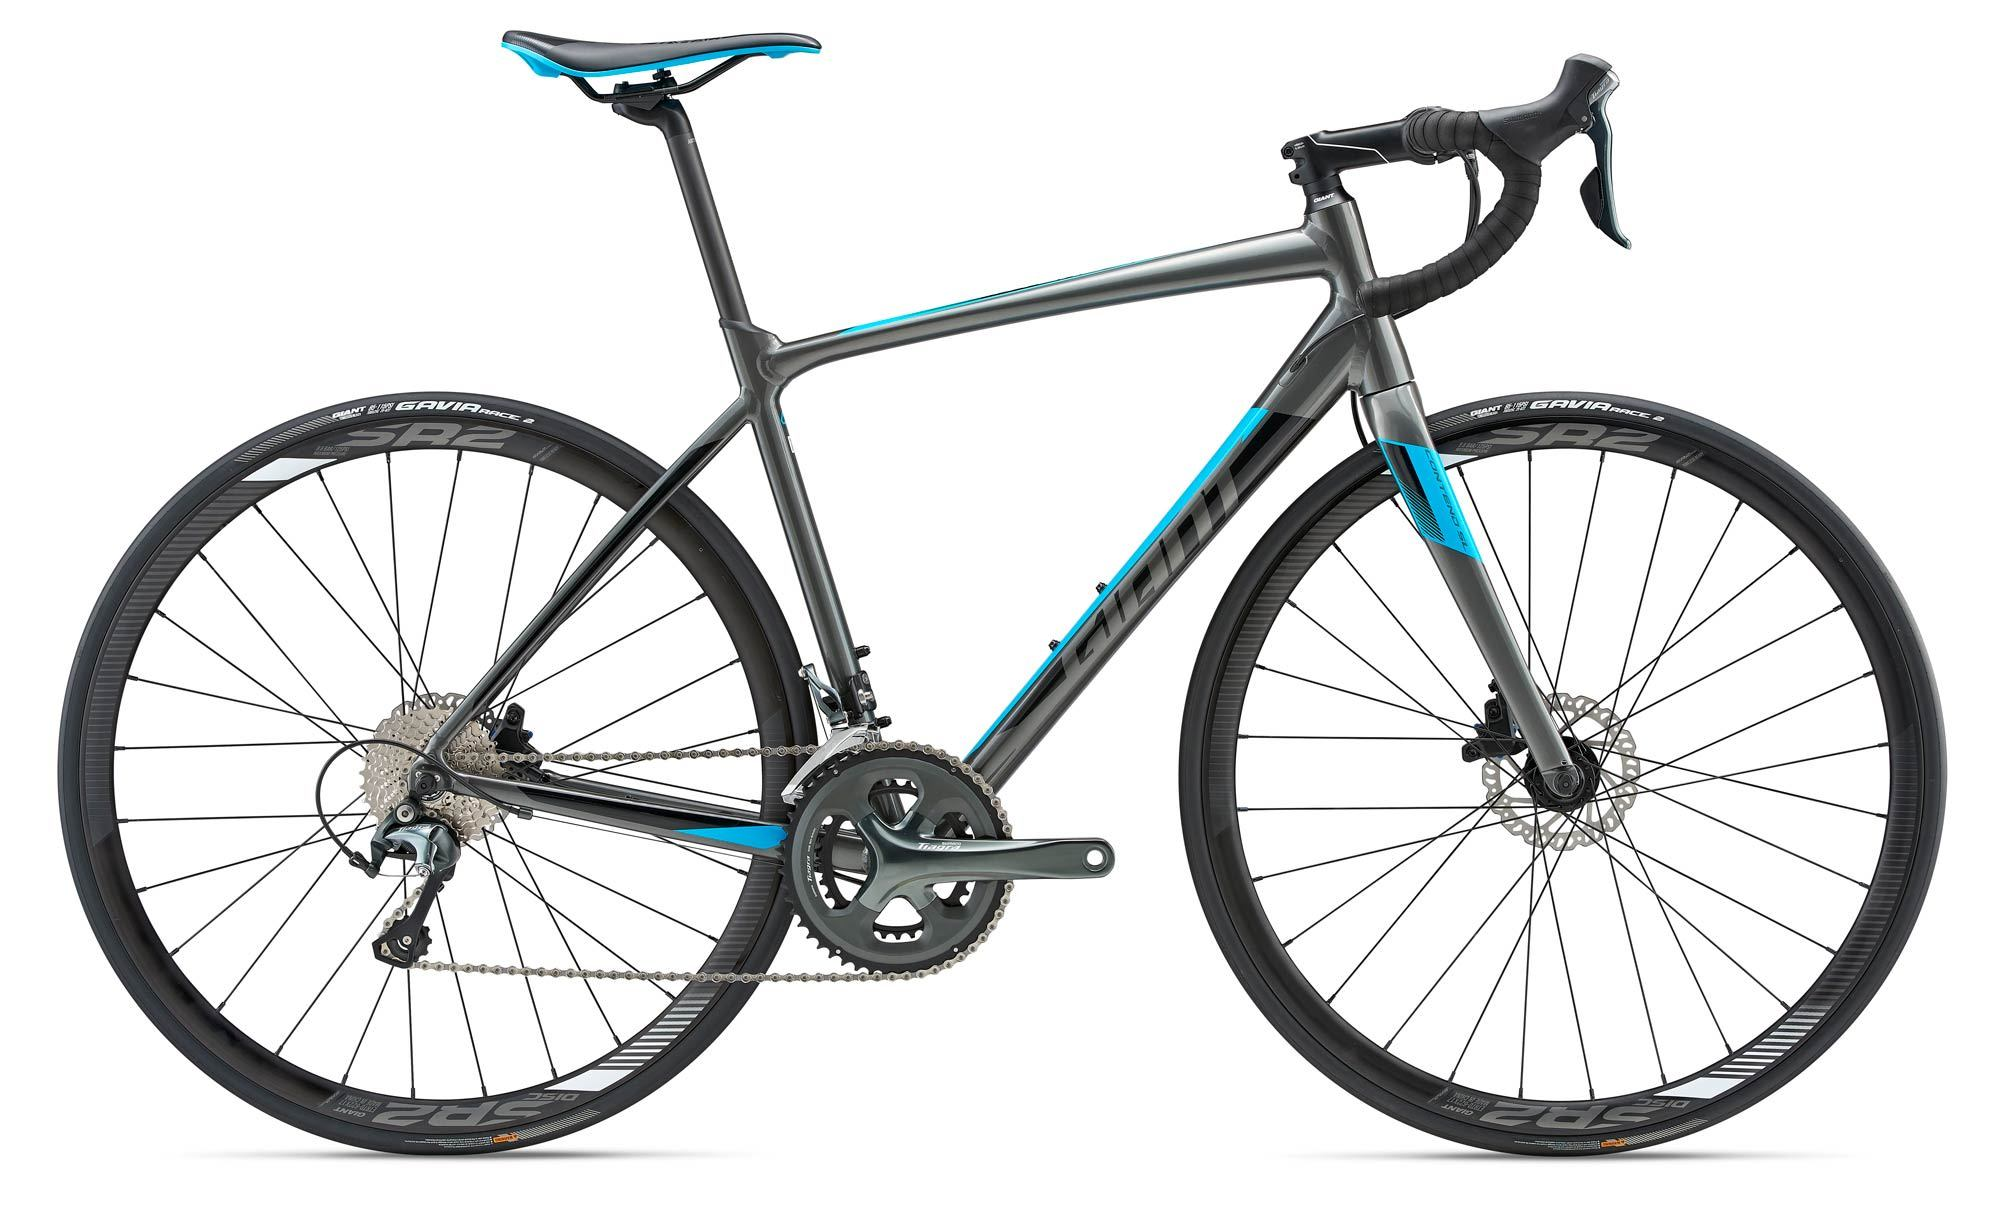 1c733cdc9e3 Giant Contend SL 2 Disc 2018 Road Bike - Charcoal/Black/Blue £999.00